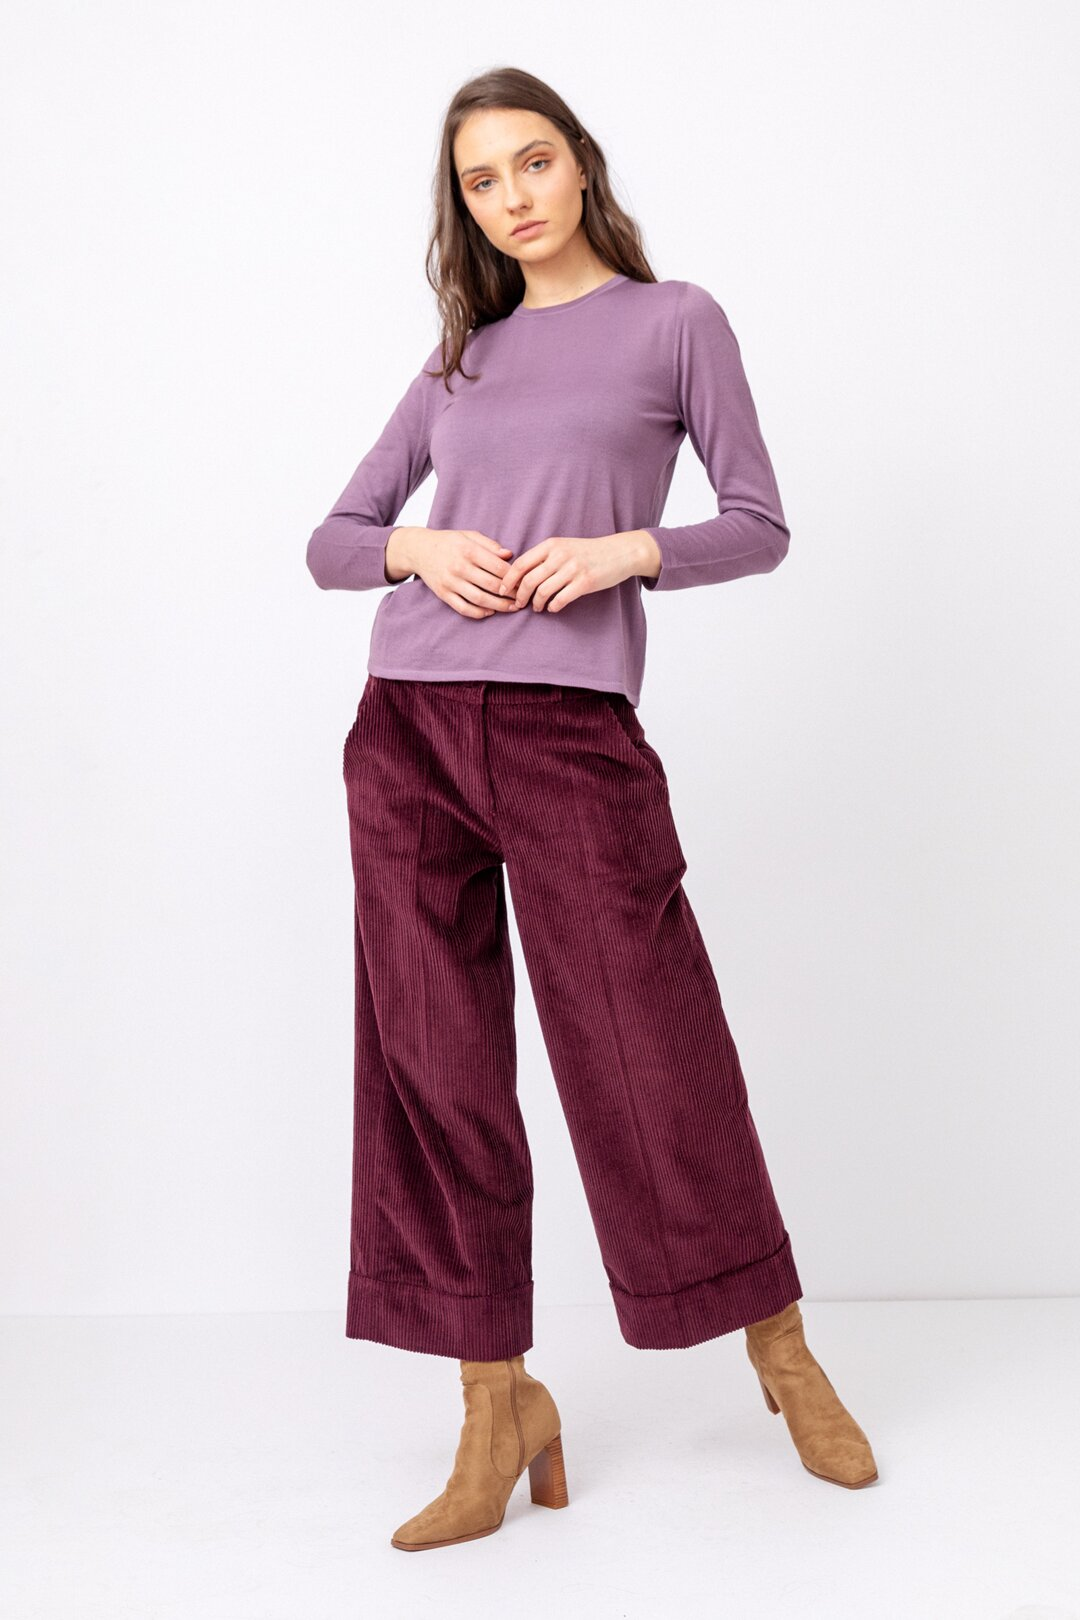 outfit-7c8a8505